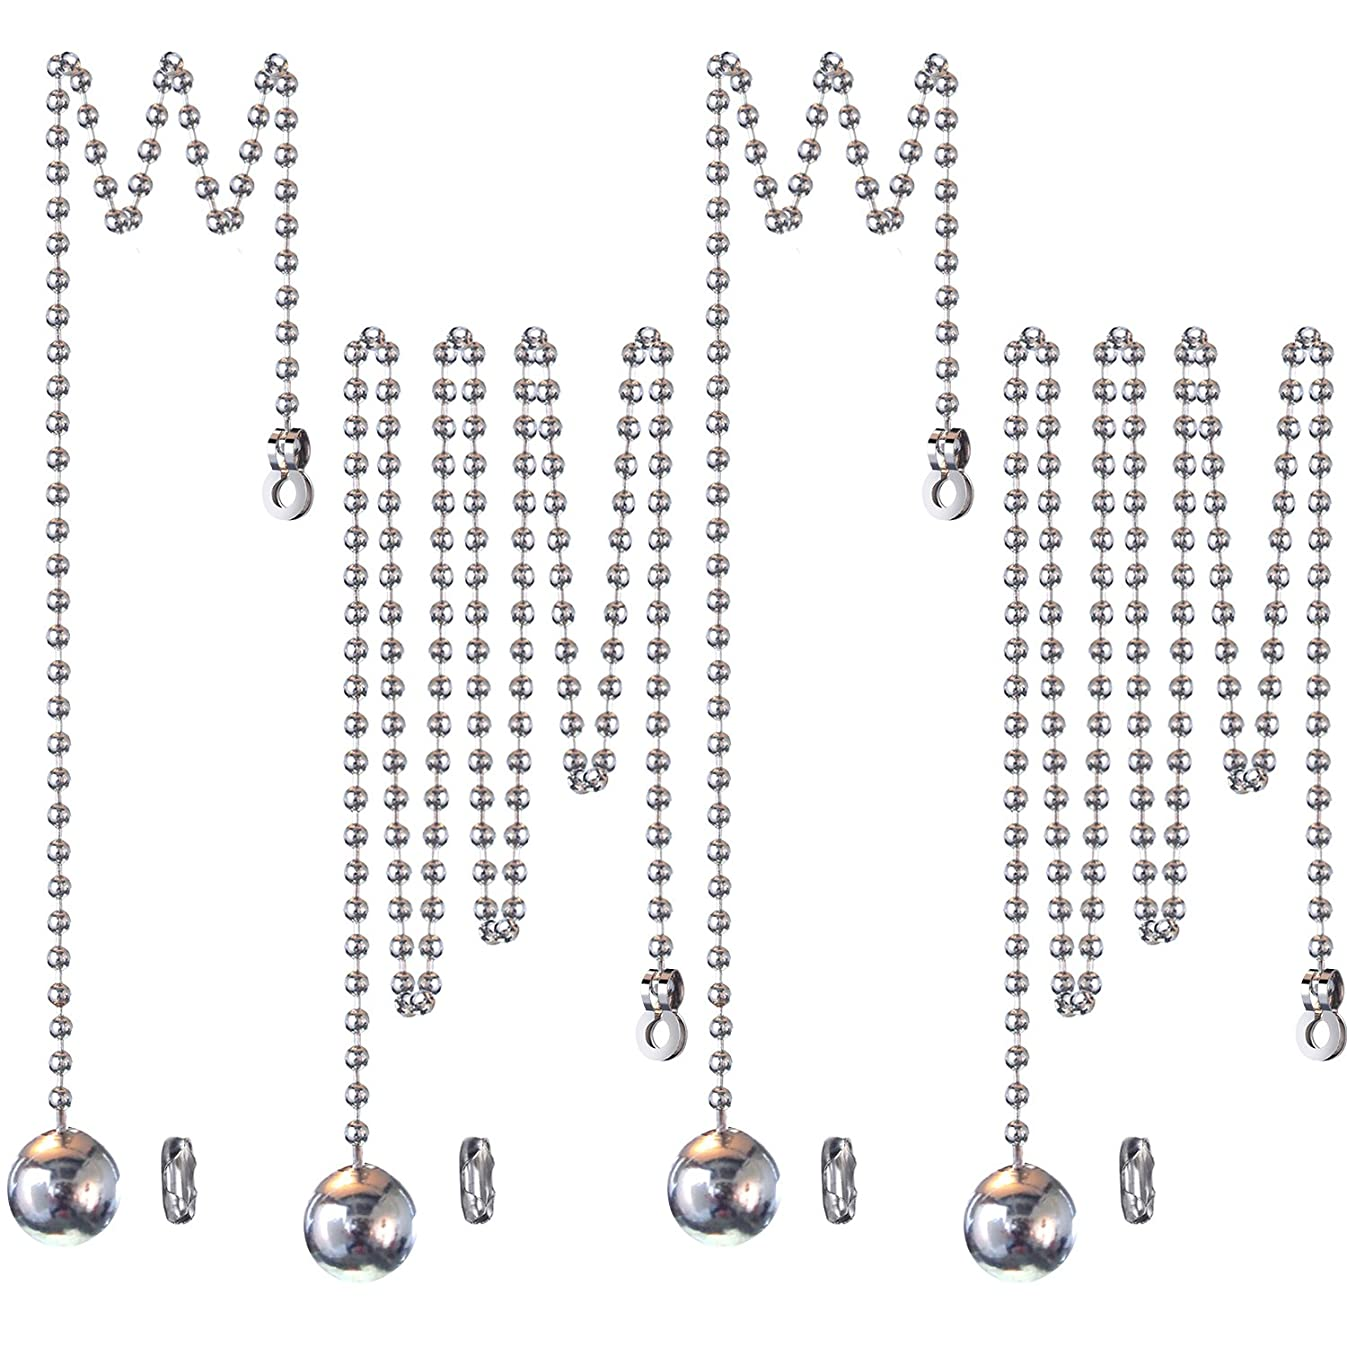 1 Meter Length Ceiling Fan Light Pull Cord Ball Pull Chain Extension with Connector, 4 Sets (Style A, 3.2 mm)